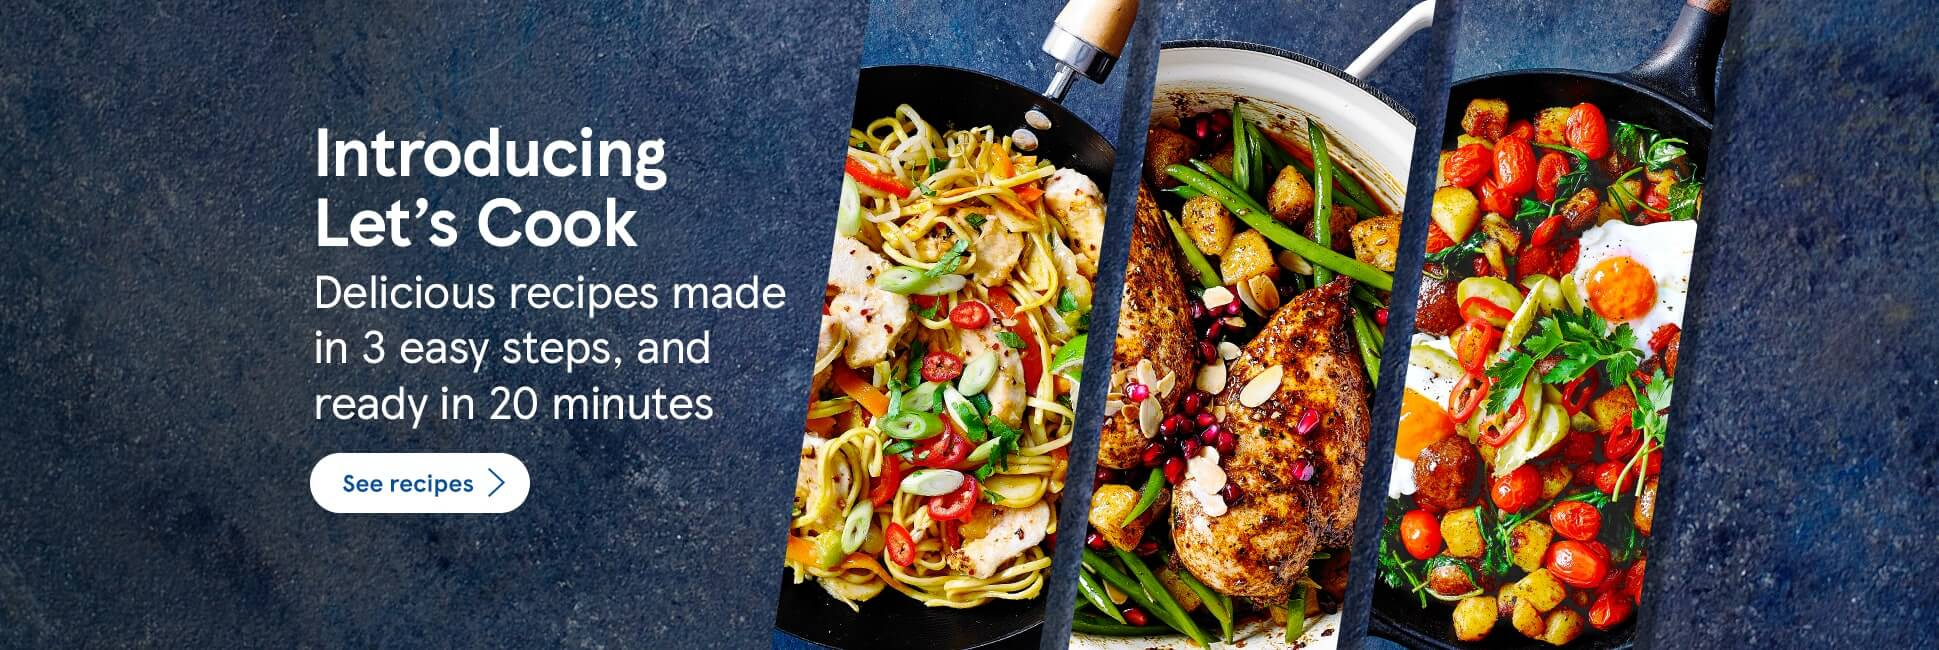 Introducing Let's Cook. Delicious recipes made in 3 easy steps, and ready in 20 minutes